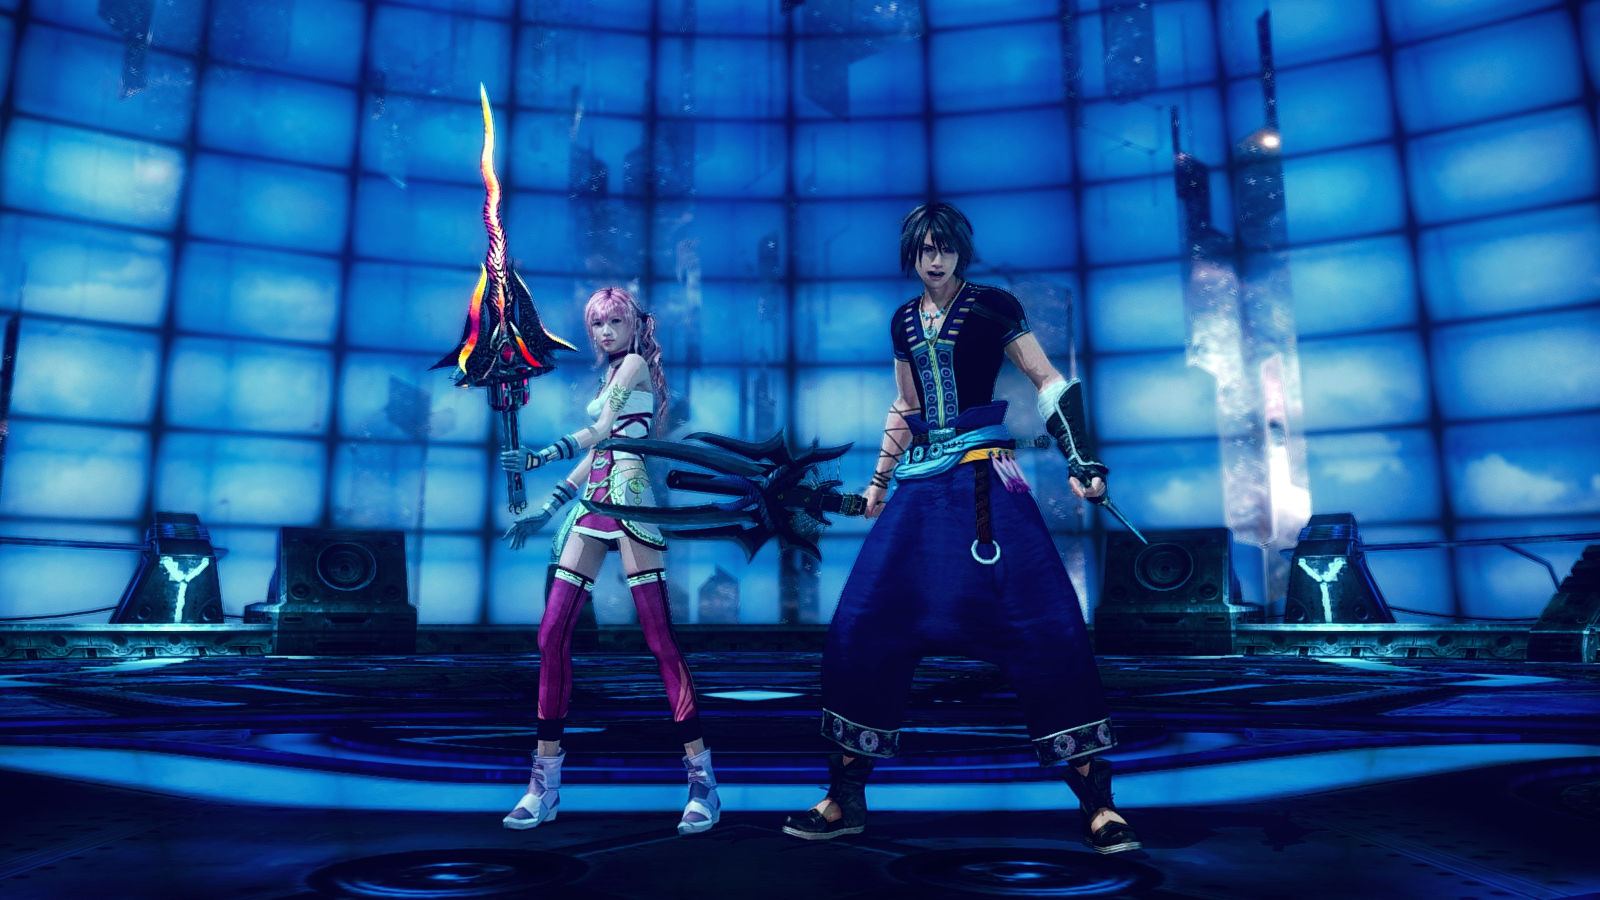 Final Fantasy XIII-2 downloadable content | Final Fantasy